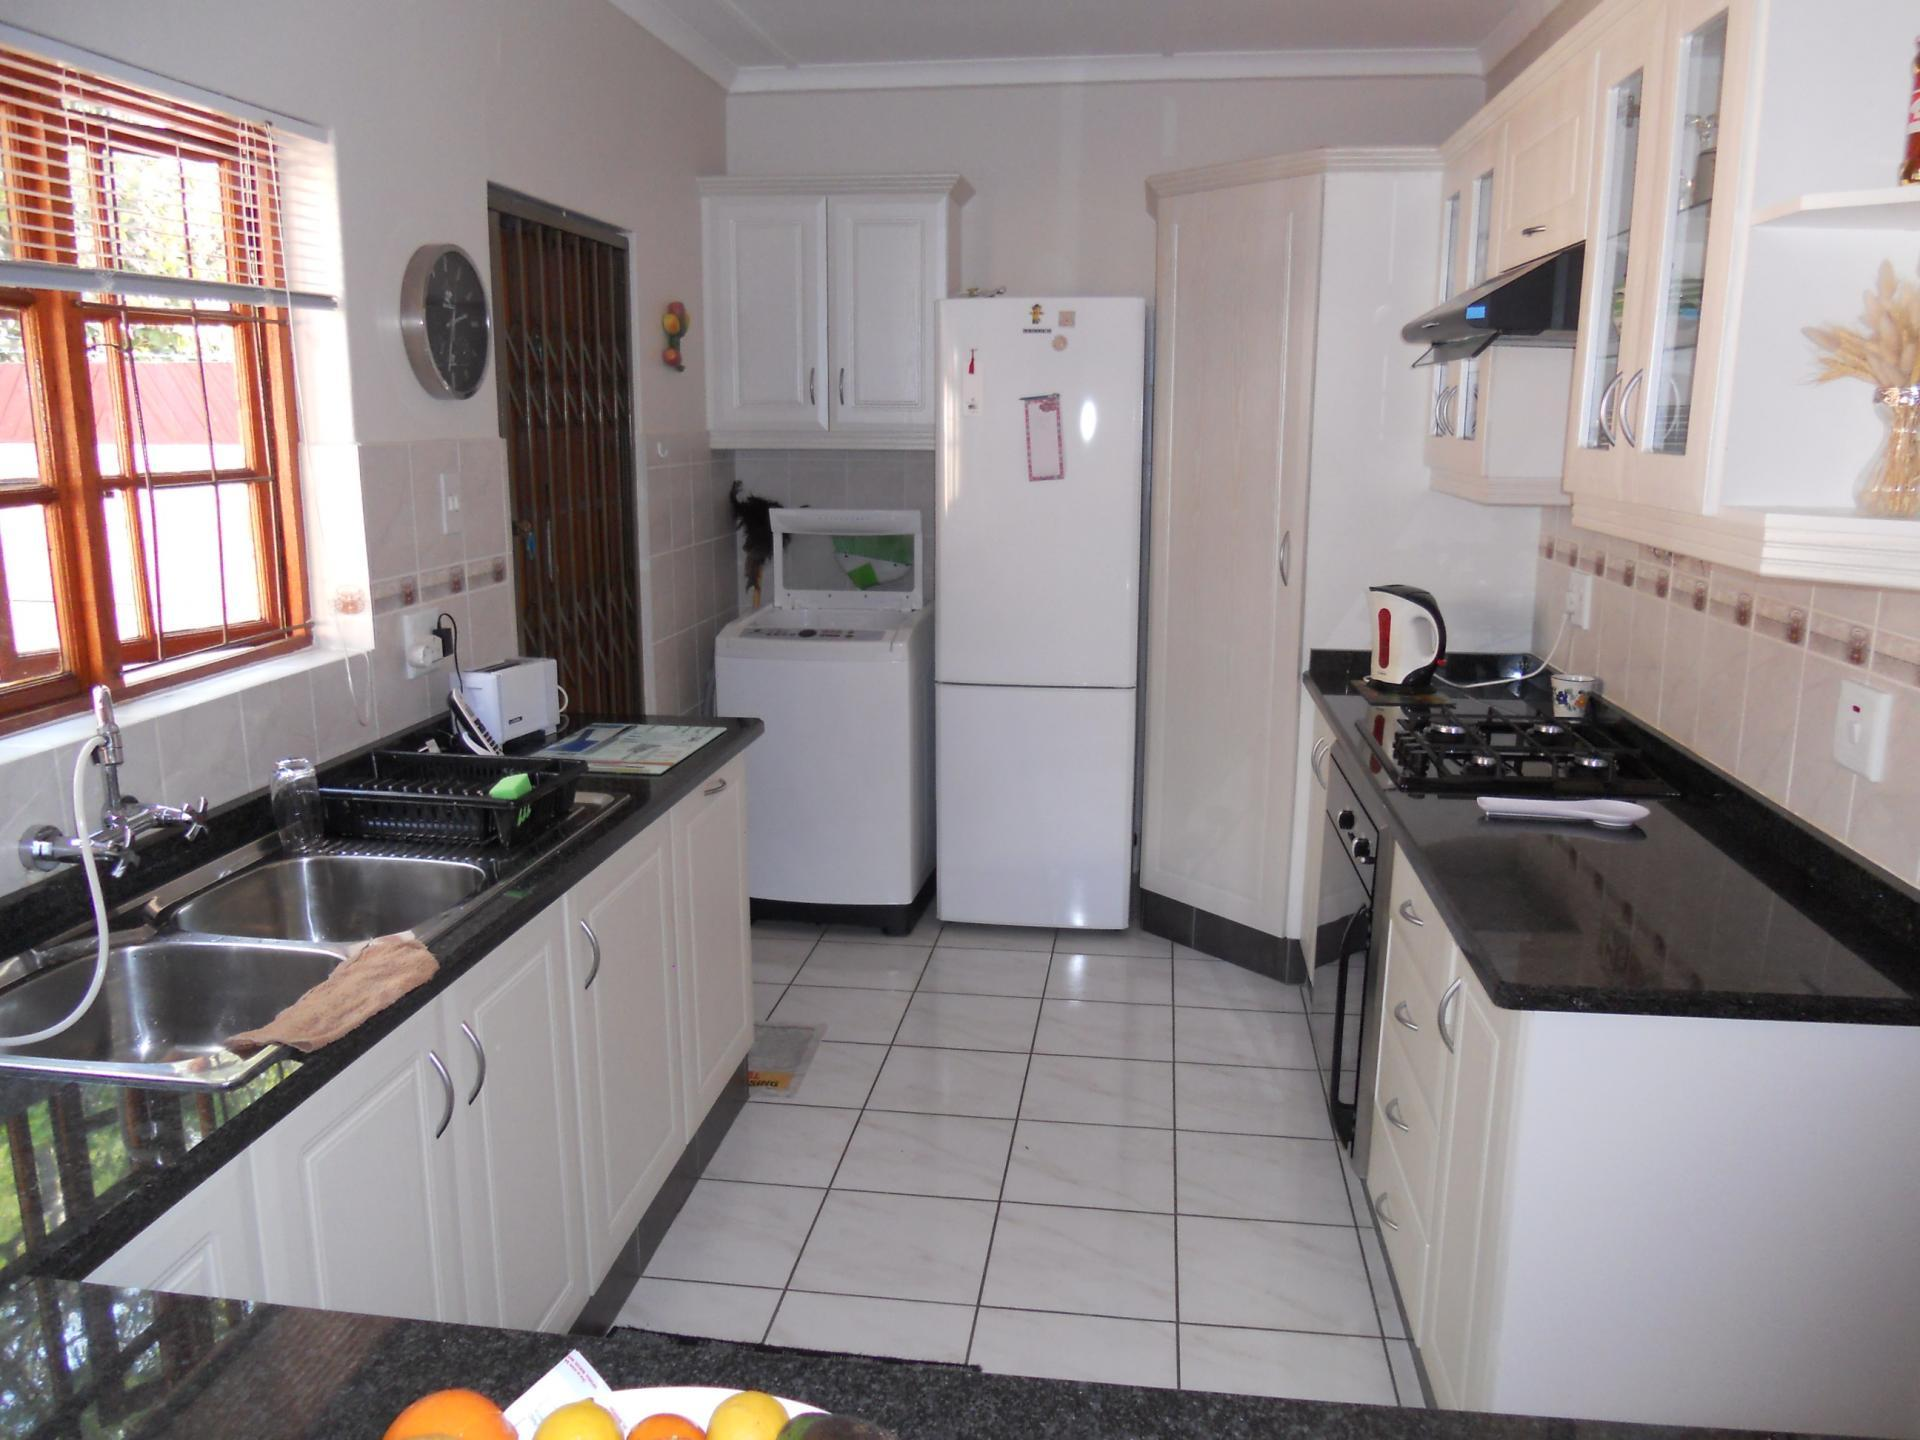 Kitchen Units For Sale In Kzn